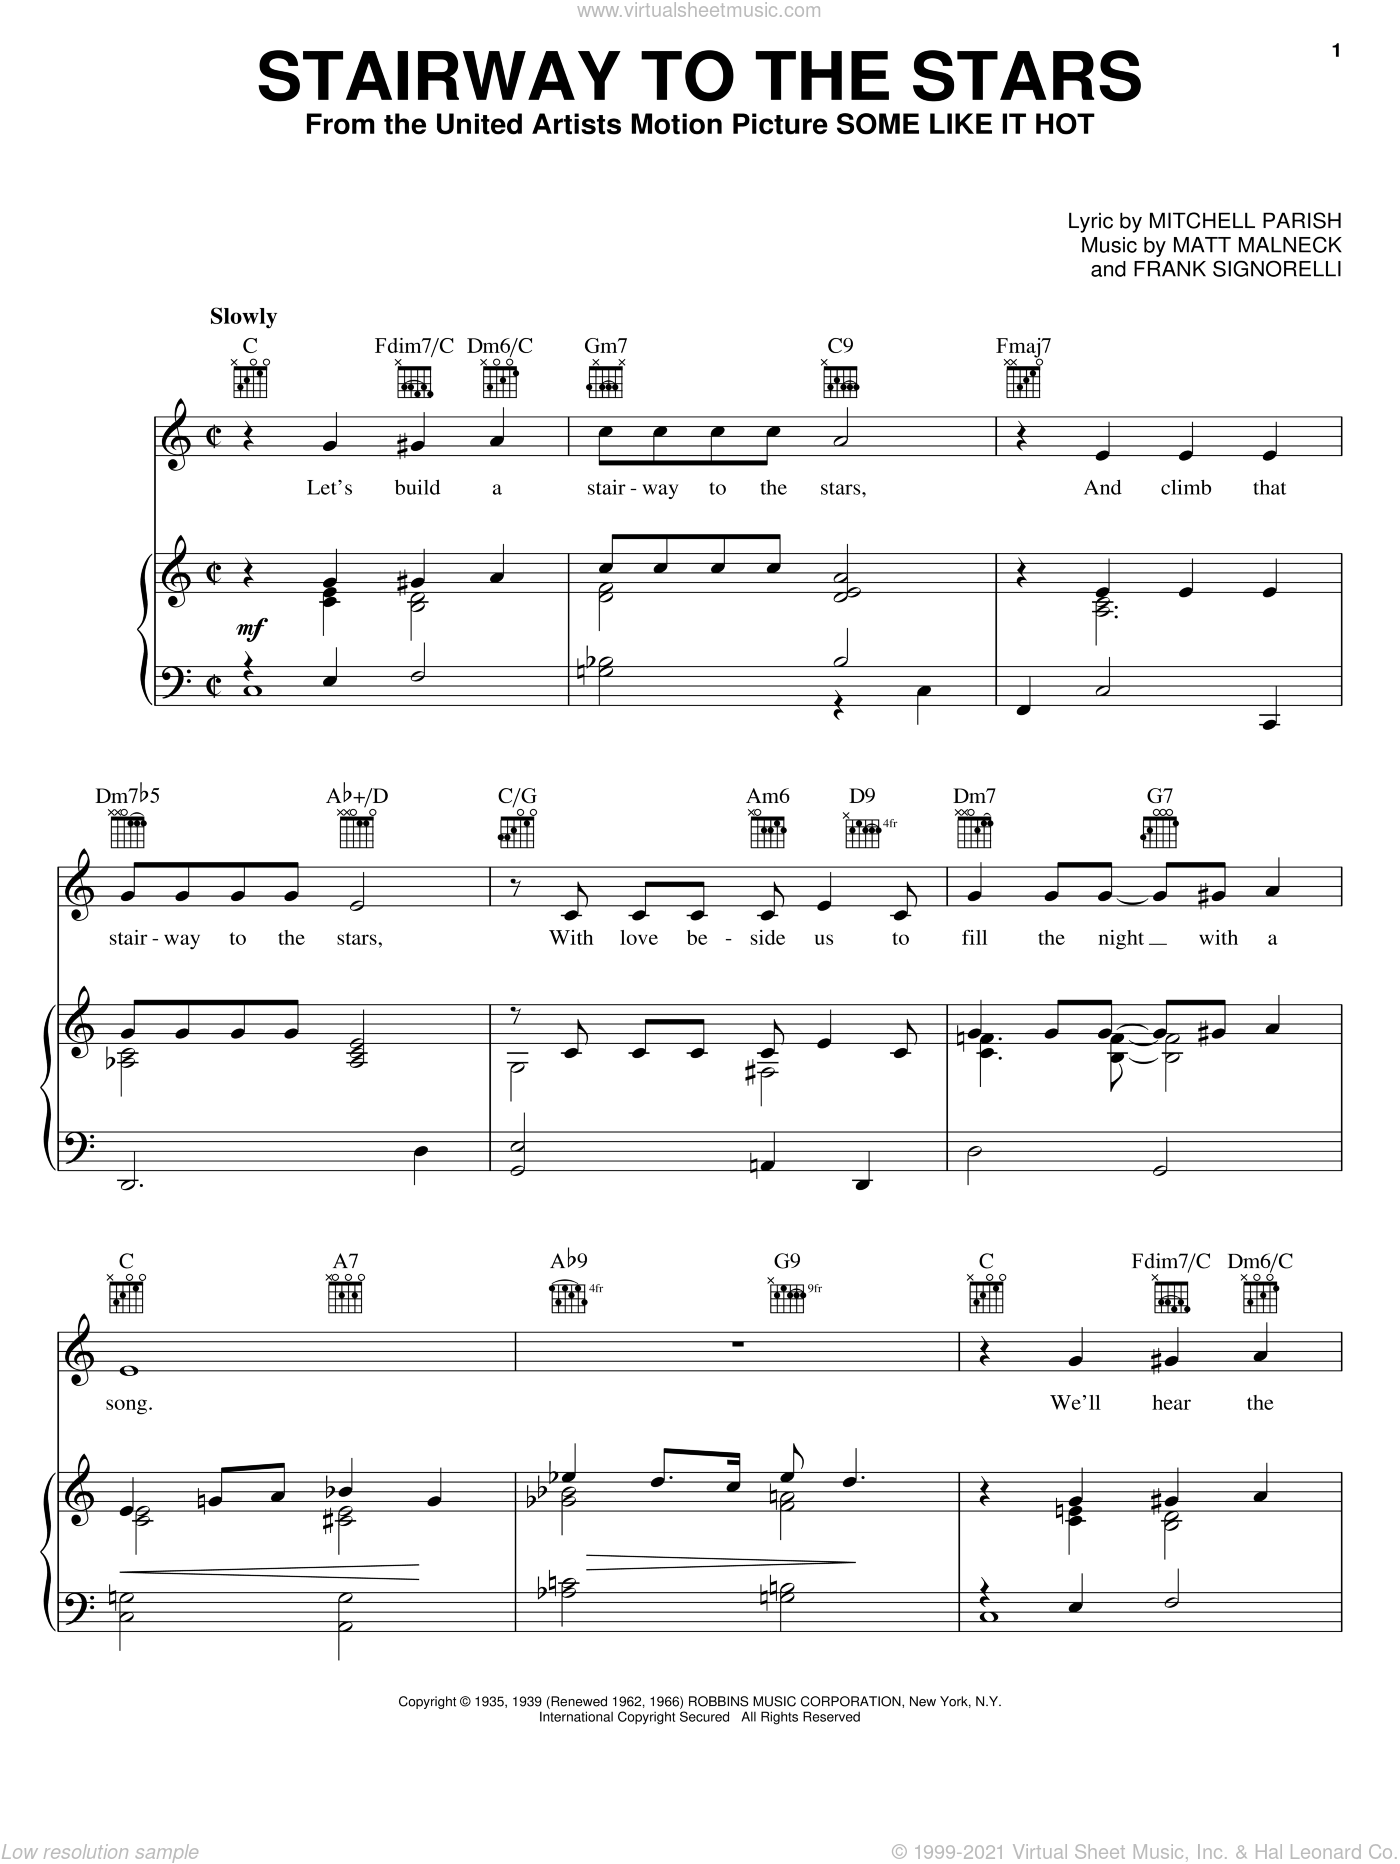 Stairway To The Stars sheet music for voice, piano or guitar by Ella Fitzgerald, Glenn Miller, Natalie Cole, Frank Signorelli, Matt Malneck and Mitchell Parish, intermediate skill level